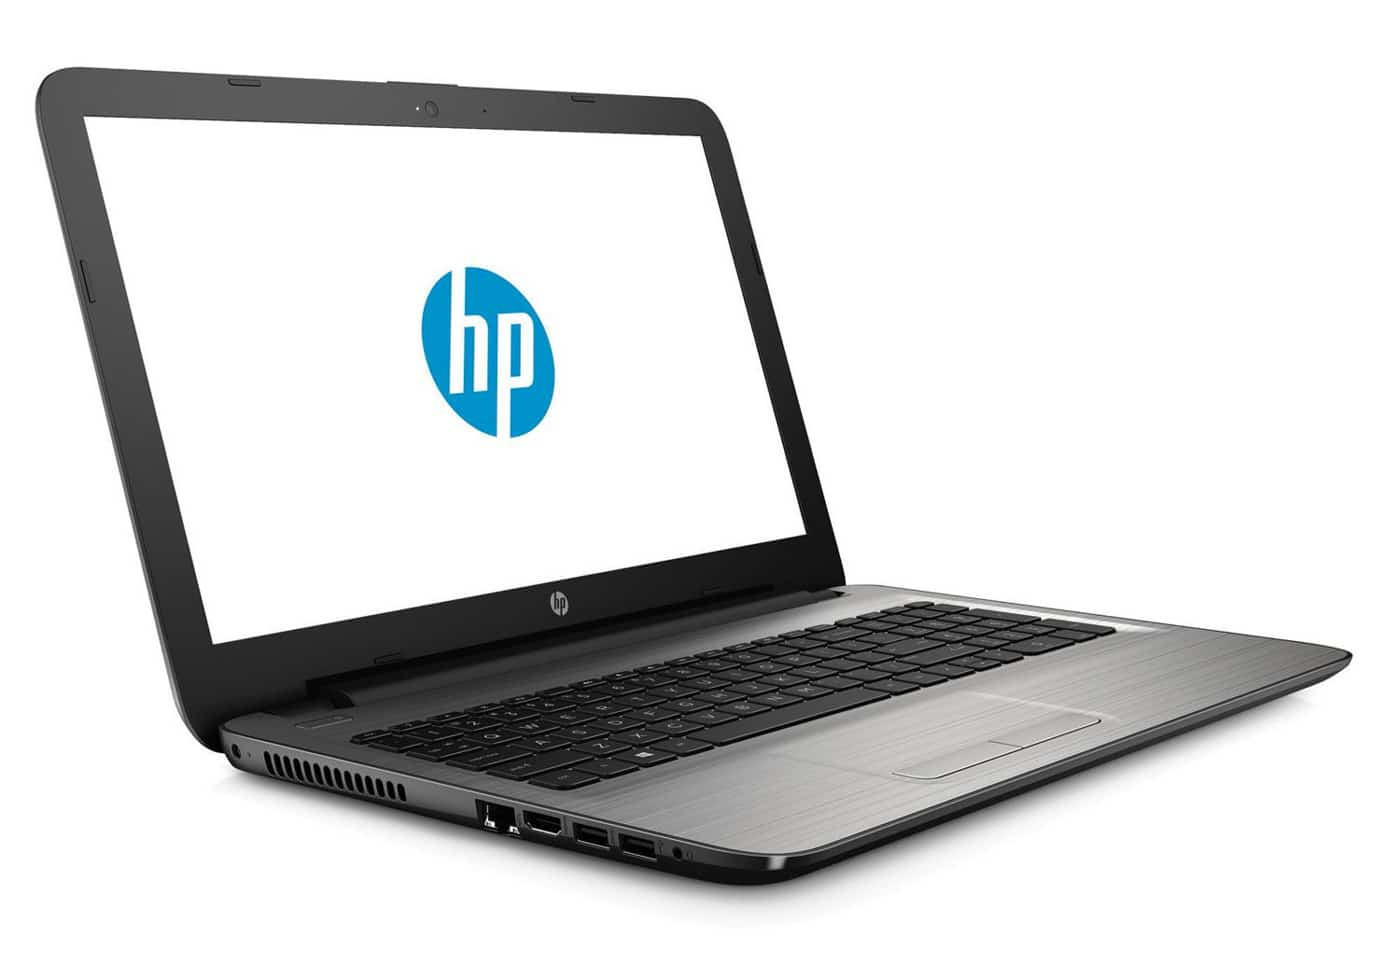 HP 15-ba053nf, PC portable 15 pouces 8 Go, Quad Core Carrizo, 1 To (399€)